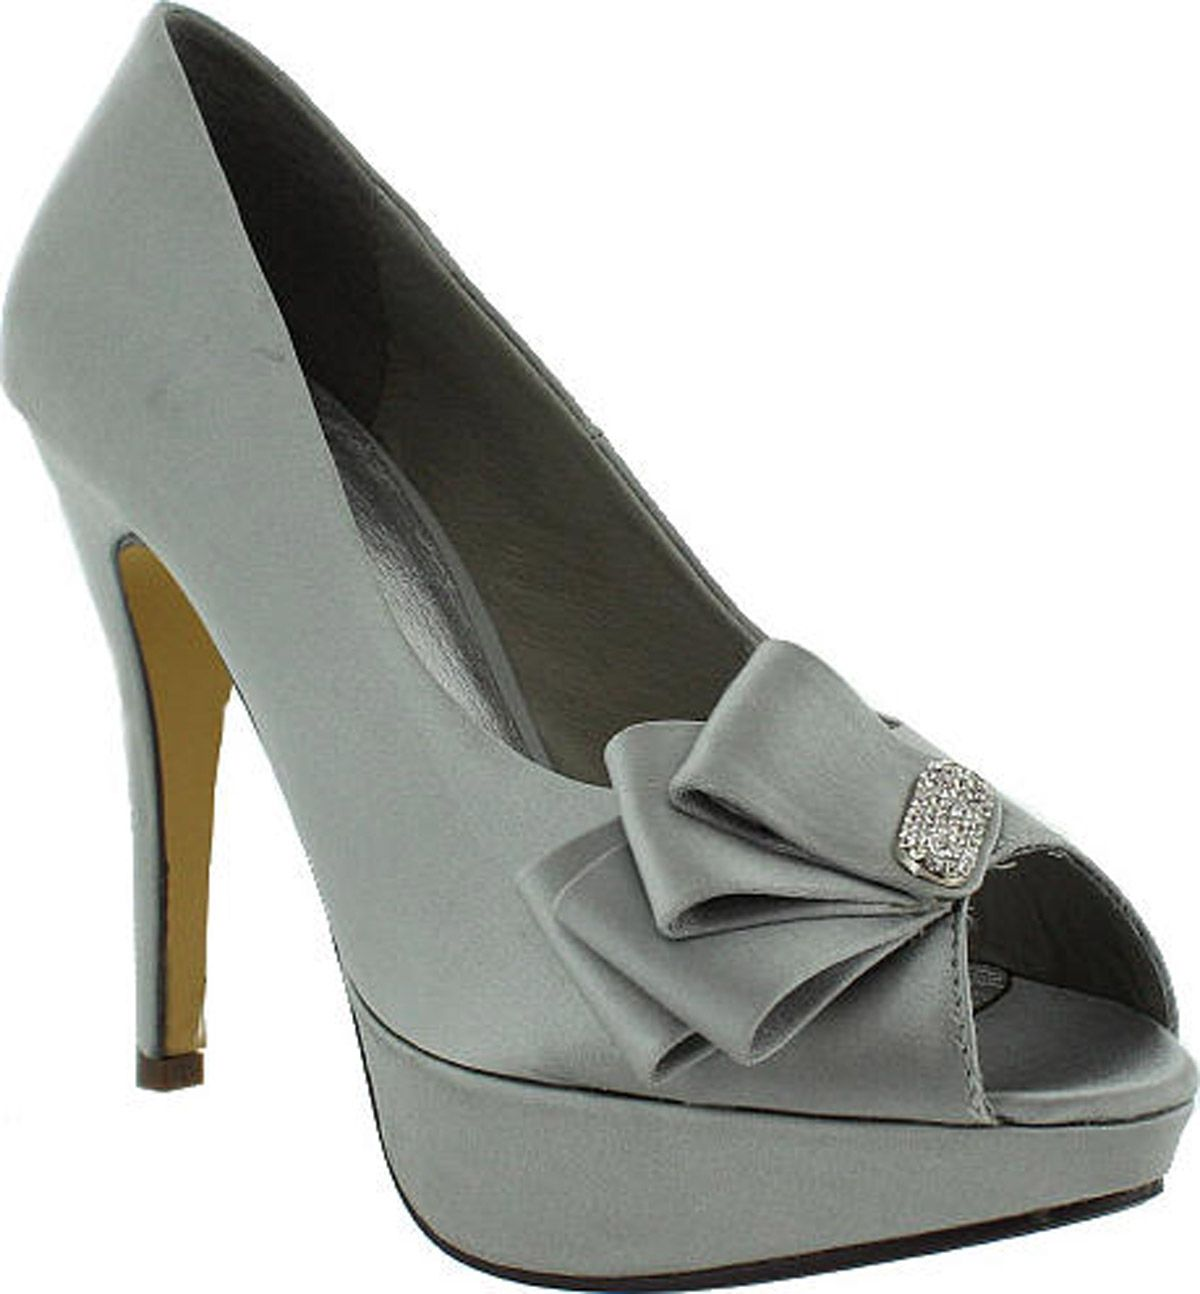 Ather   The Shoe Shed   Satin, Ather, Shoes, Heel, Size, Made   buy womens shoes online, fashion shoes, ladies shoes, mens shoe